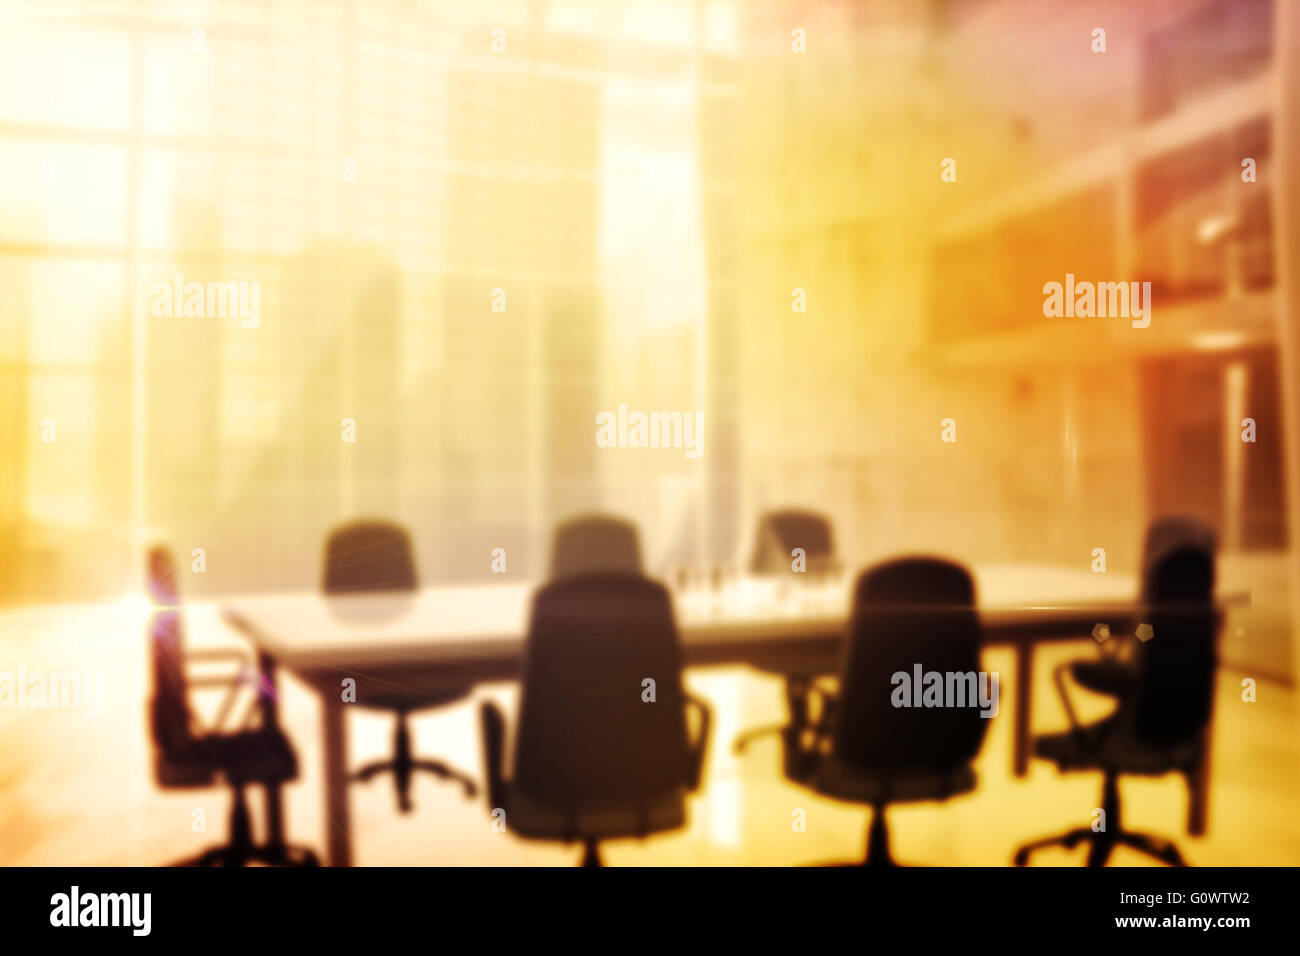 Image of a boardroom - Stock Image